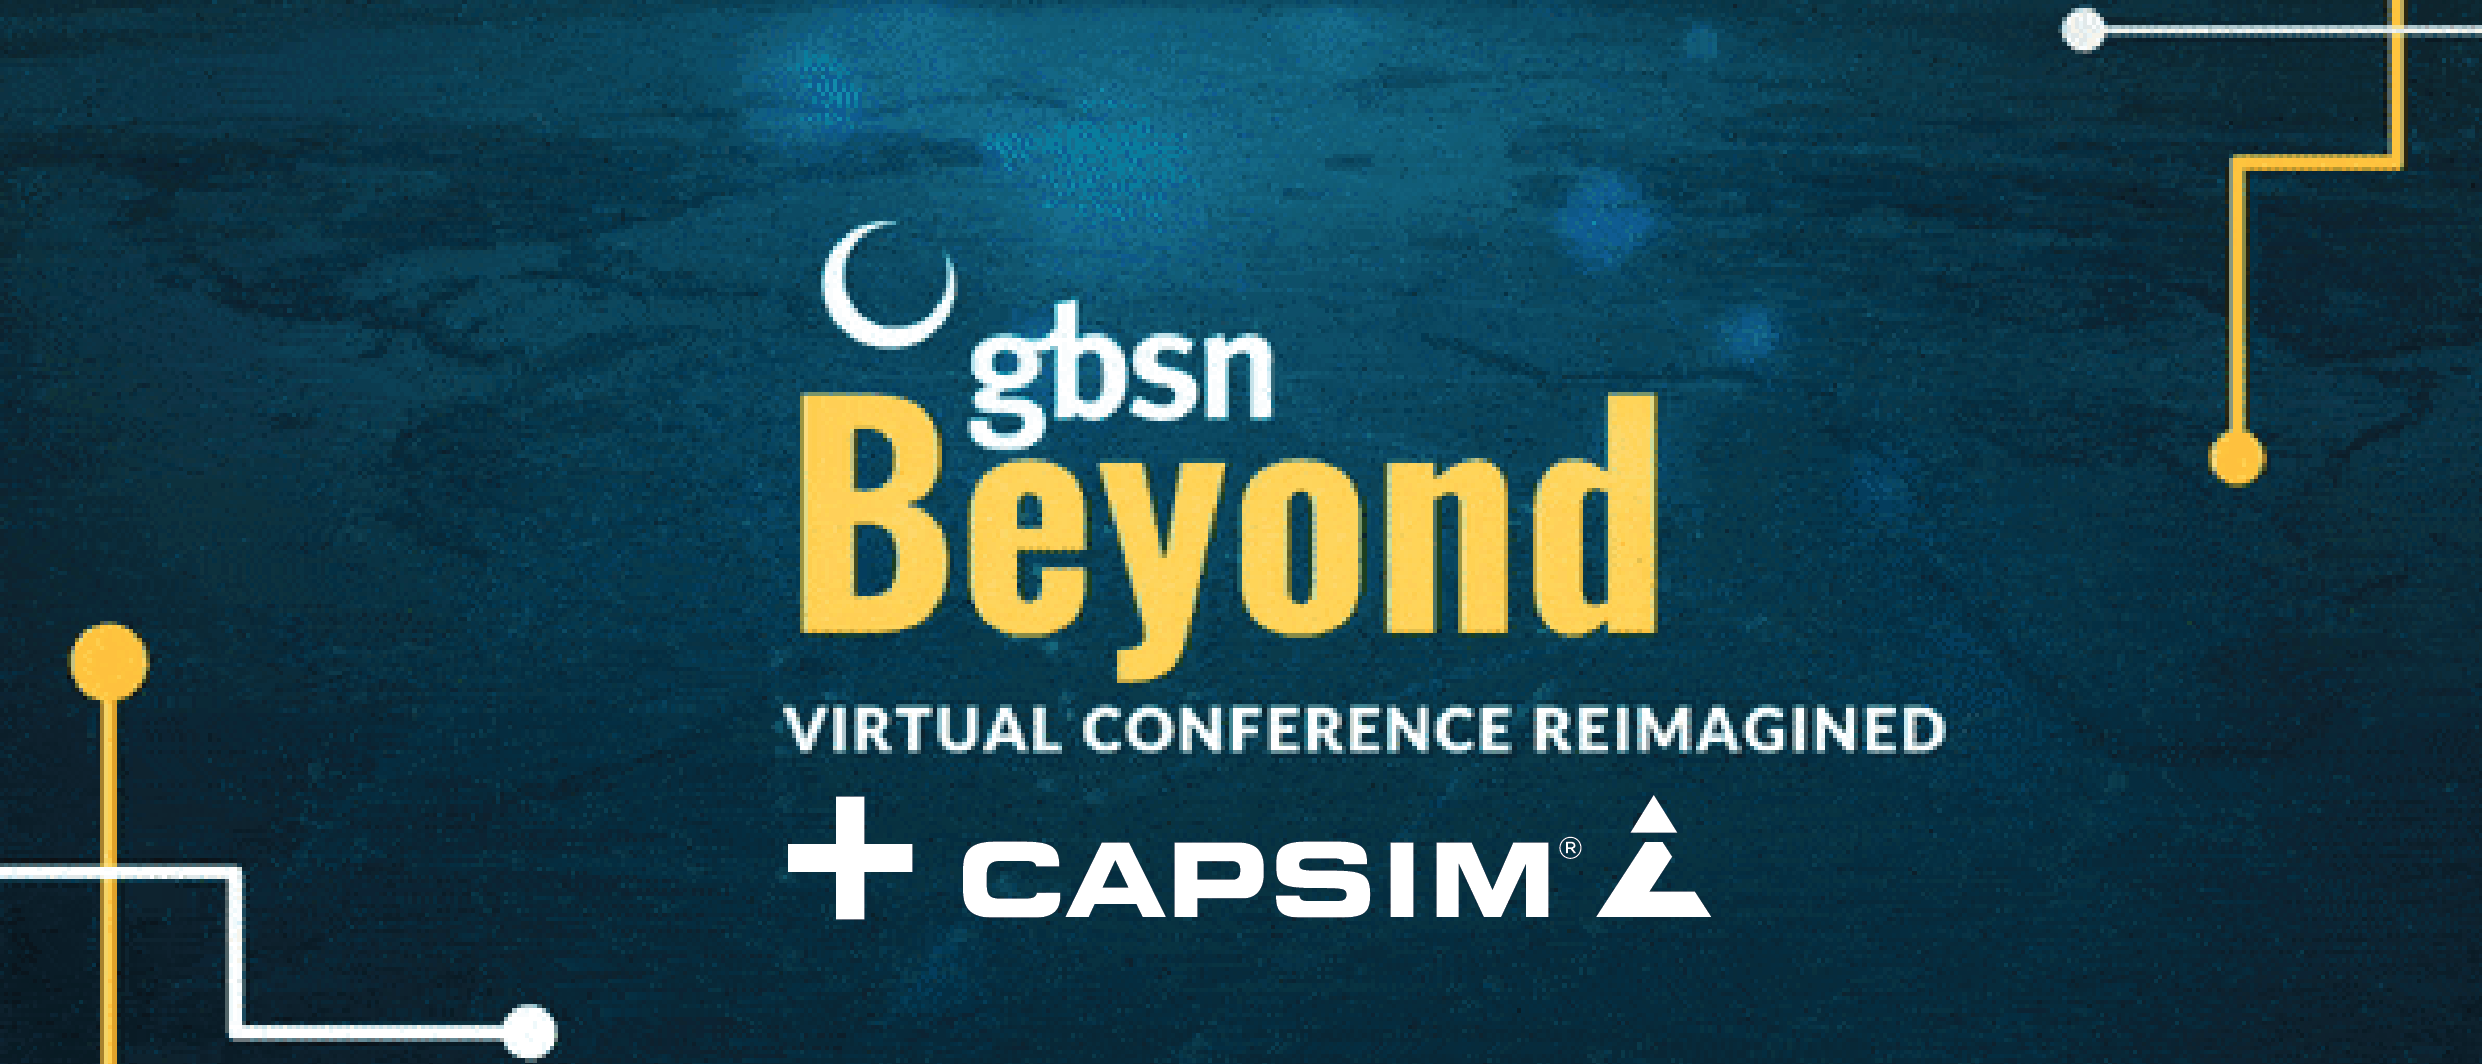 Capsim's Partnership with GBSN Improves Access to Quality Education